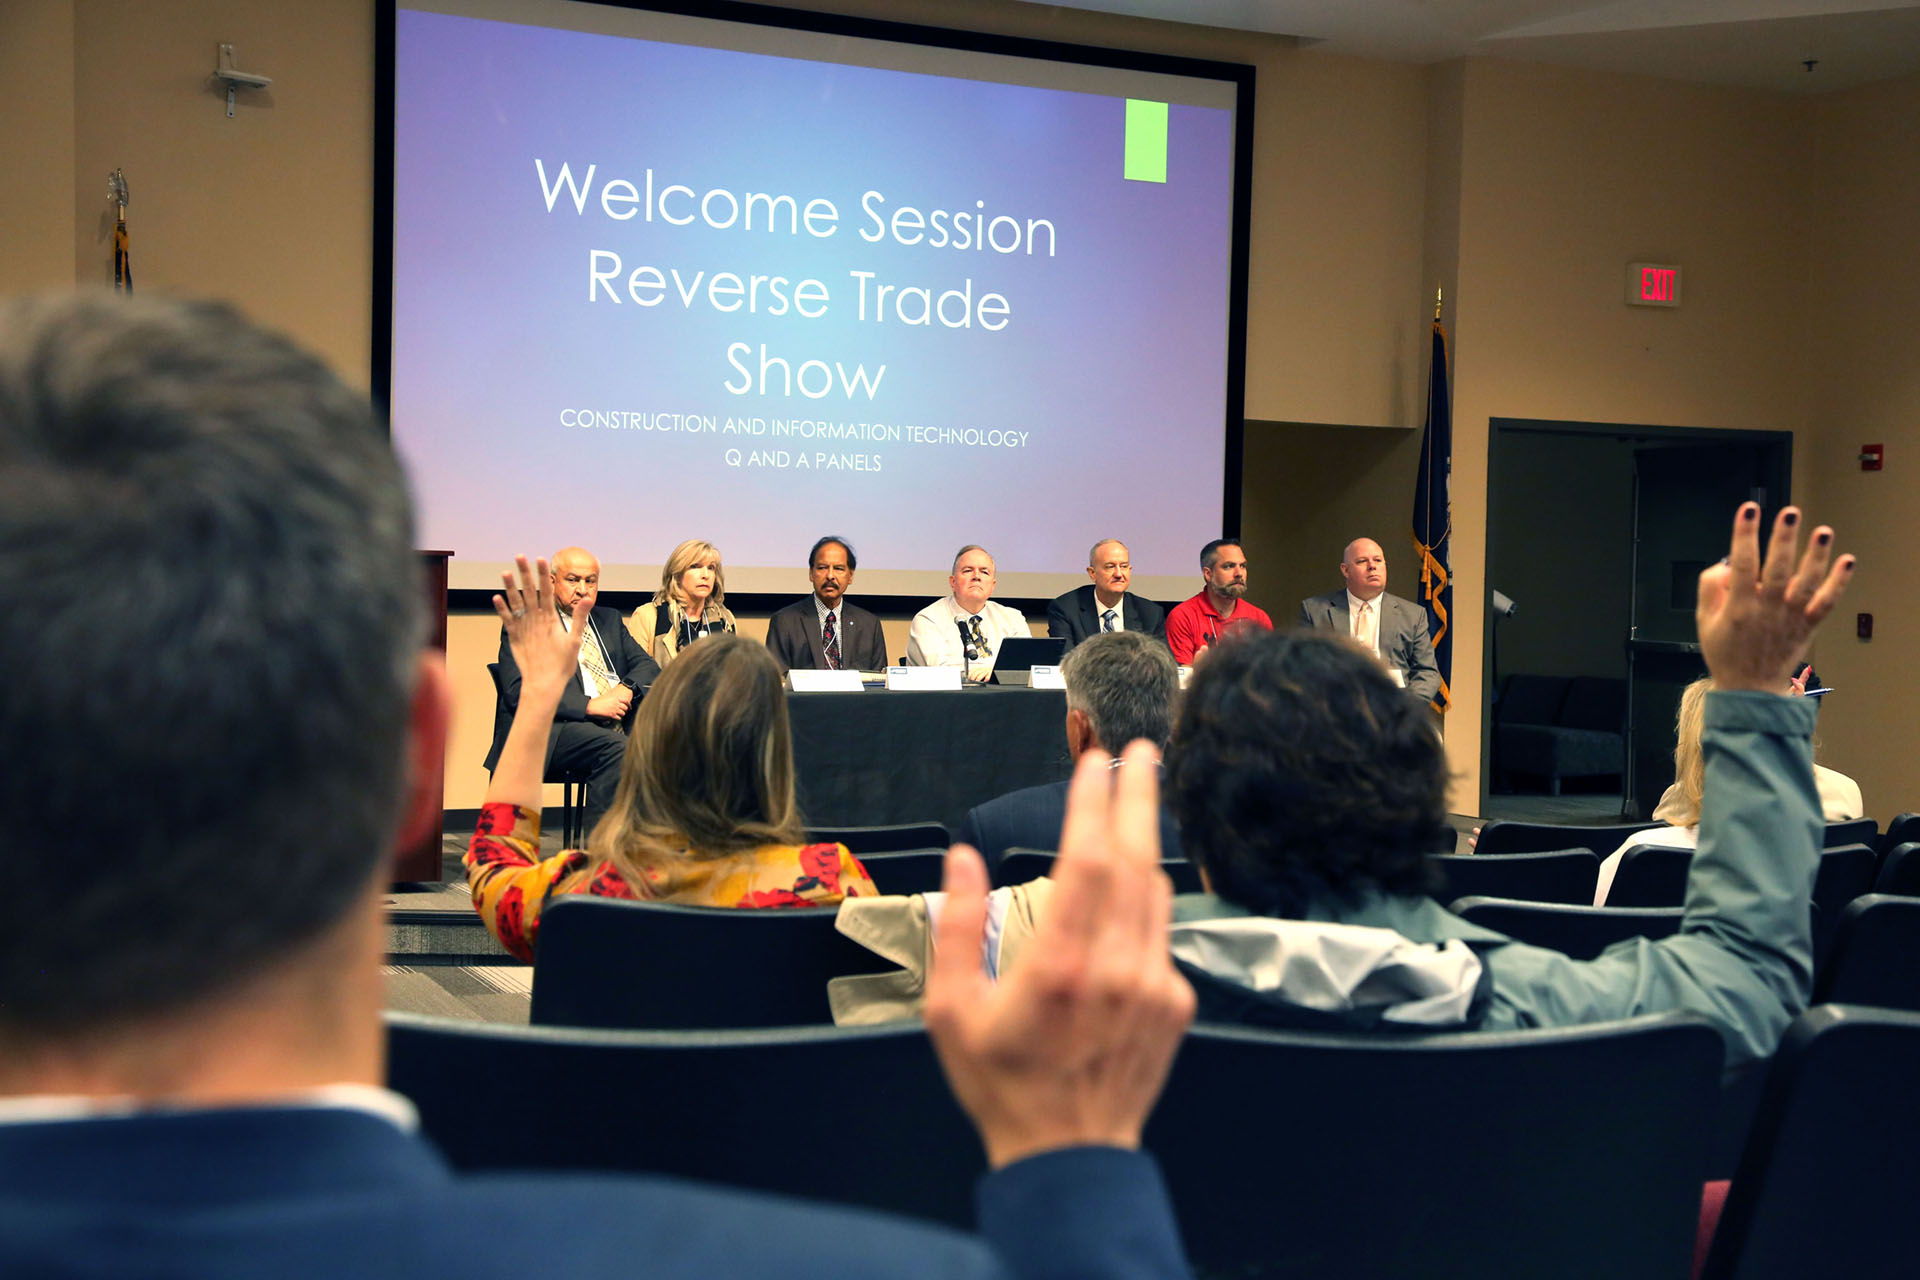 Reverse trade show provides insight on procurement